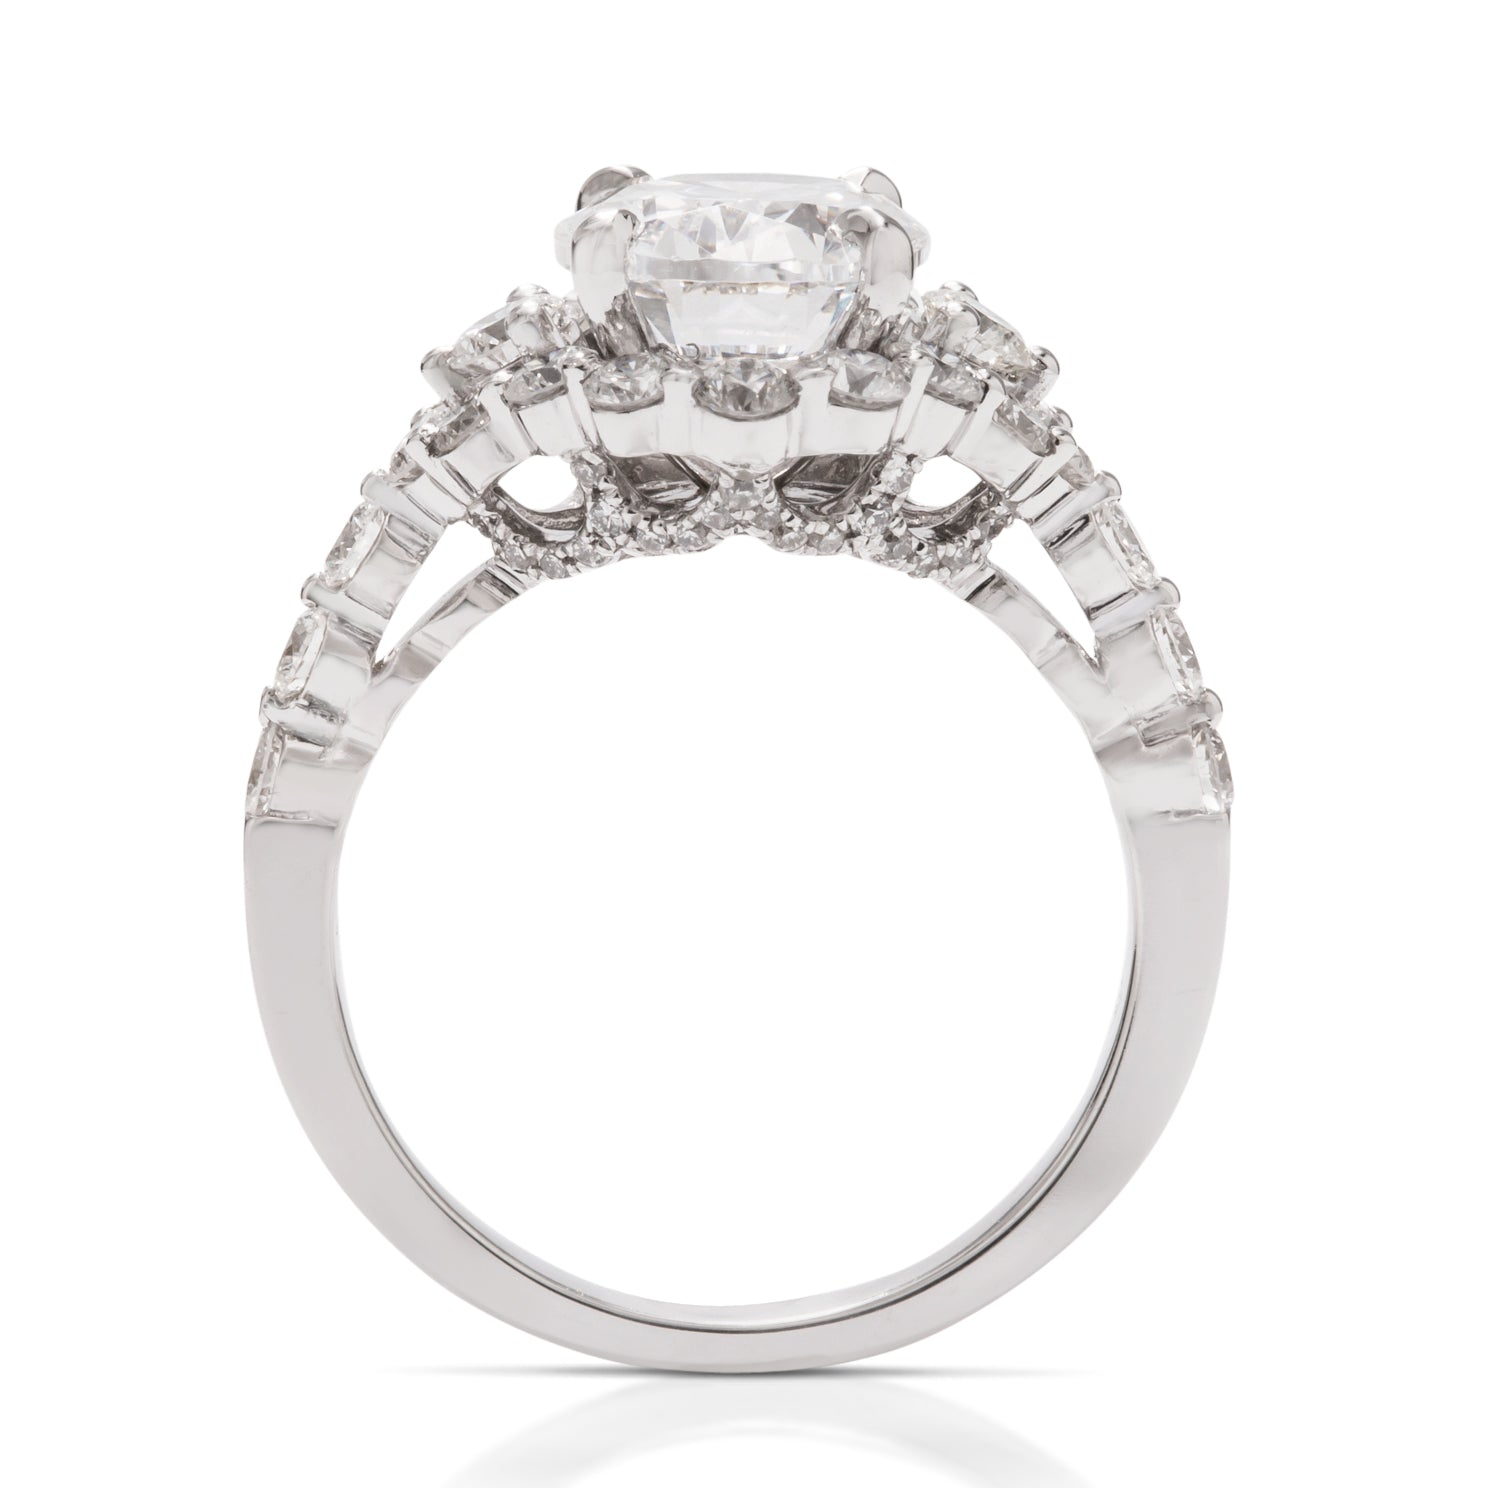 Large Diamond Halo Semi-Mount for Oval Center Stone - Charles Koll Jewellers